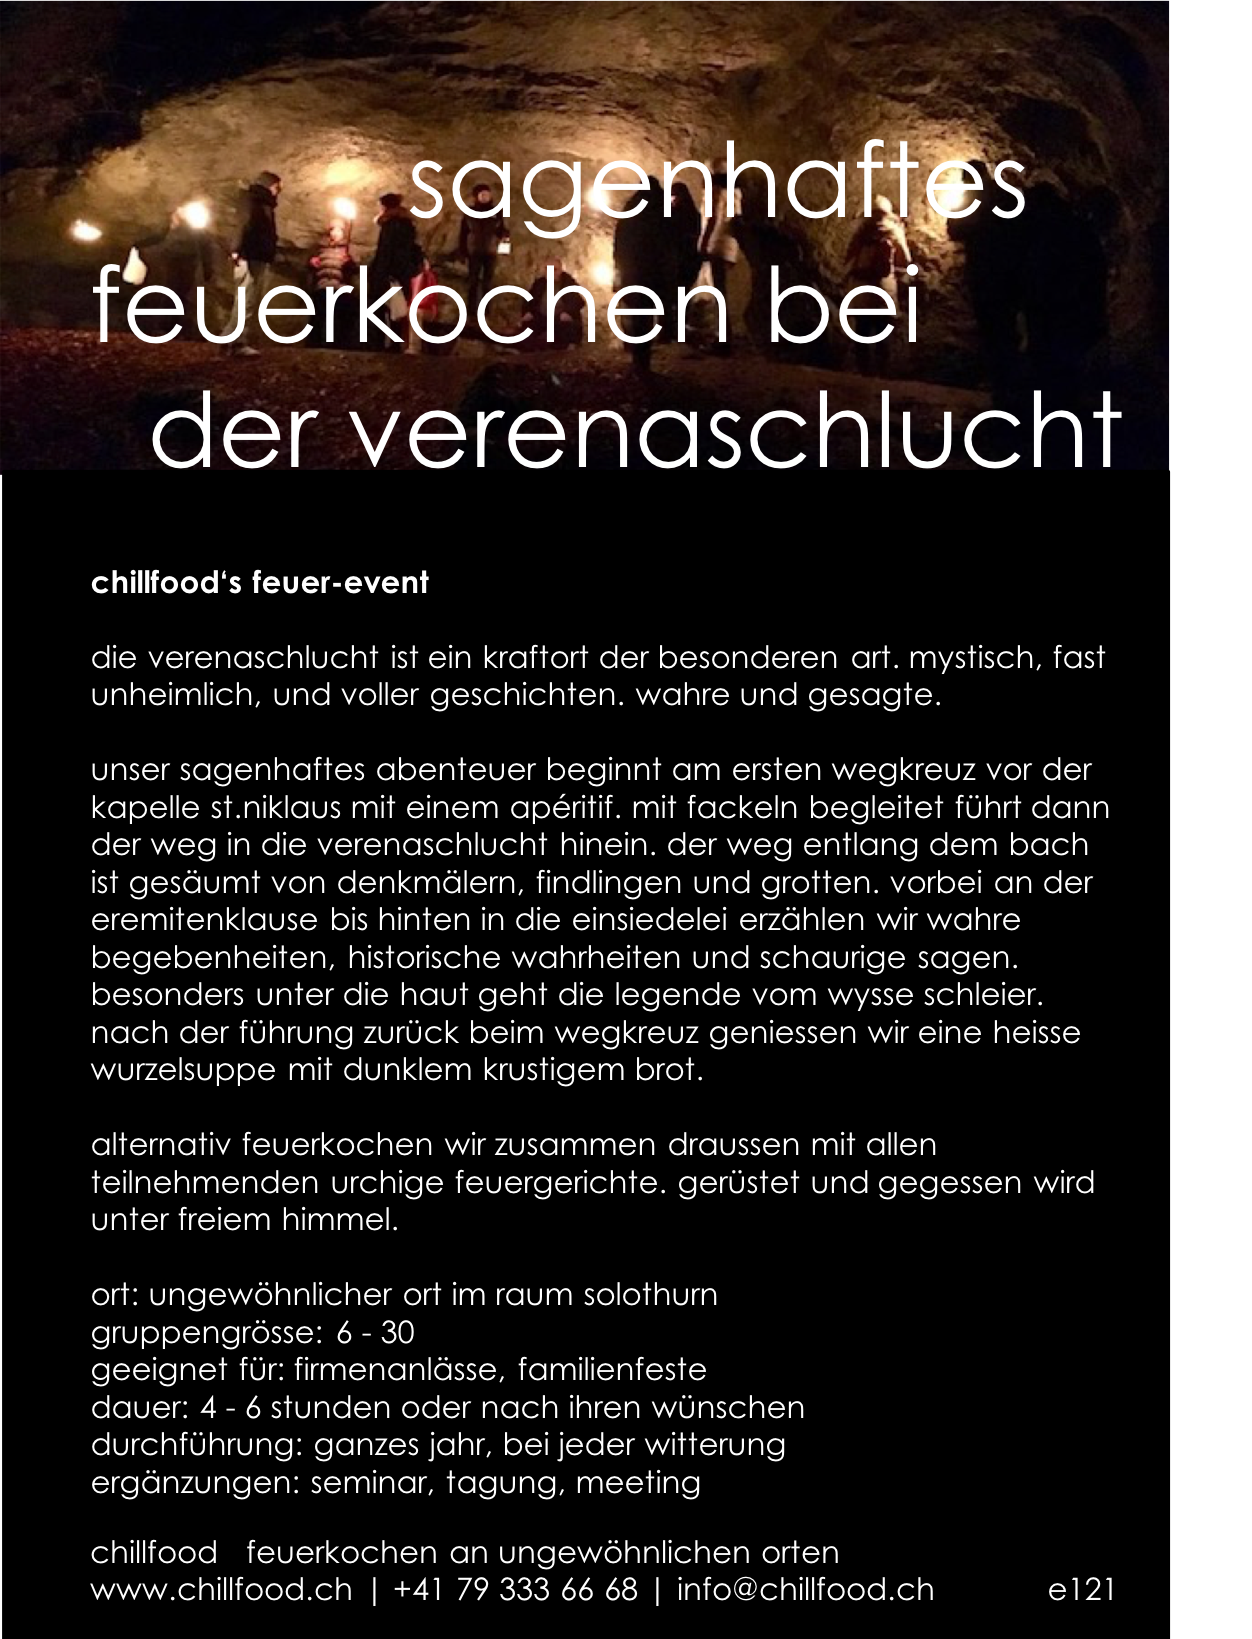 verenaschlucht - food events, catering, feuerkochen, grillkurse ...